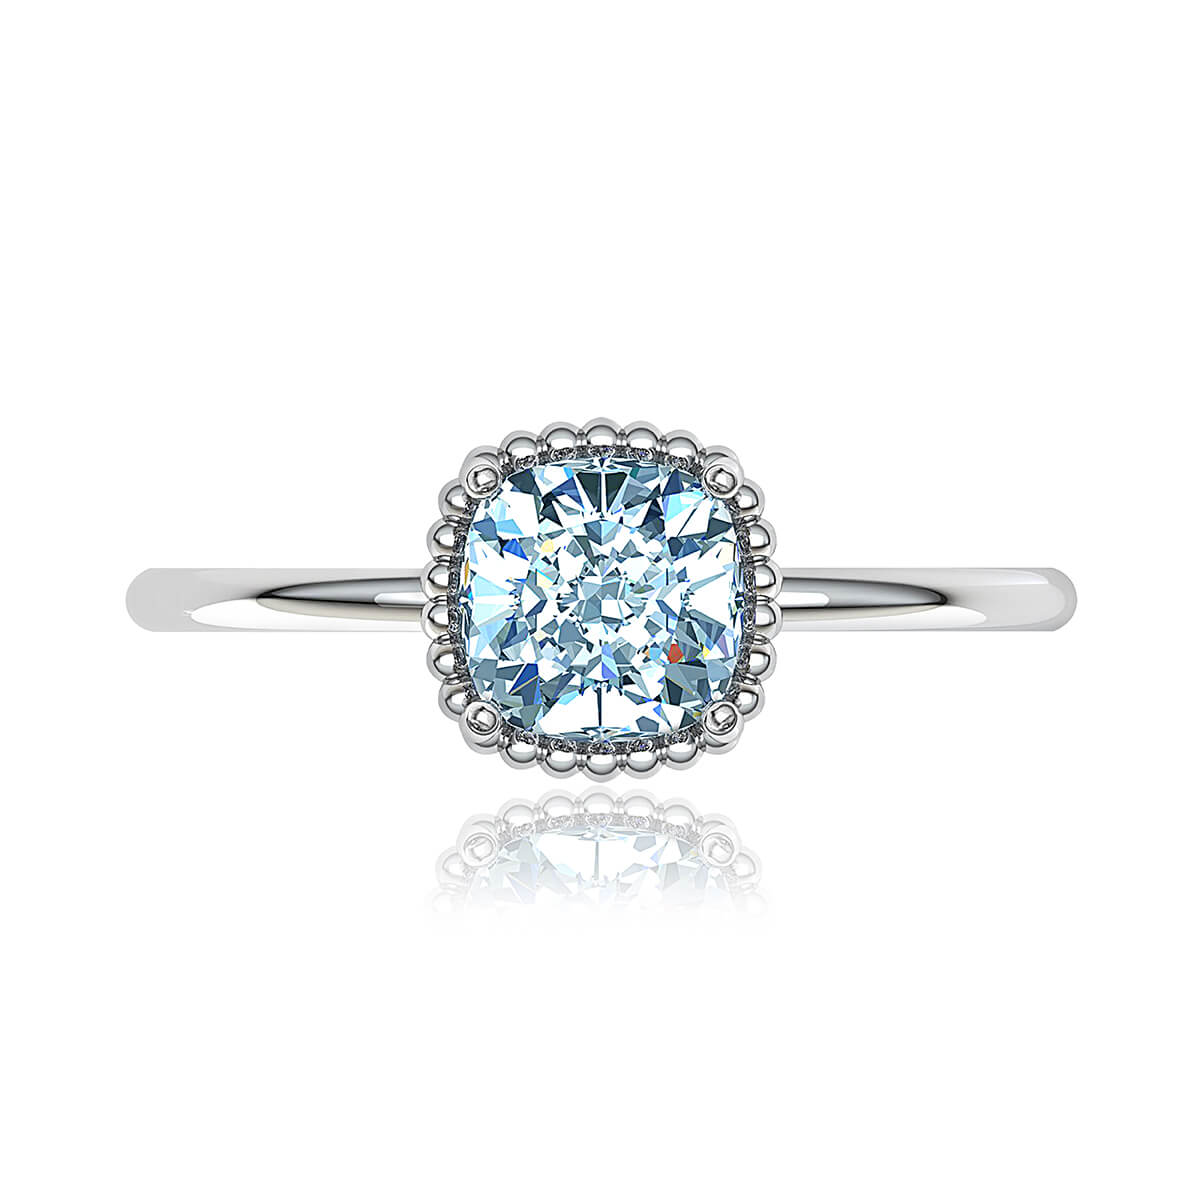 Rosarica Moissanite Ring